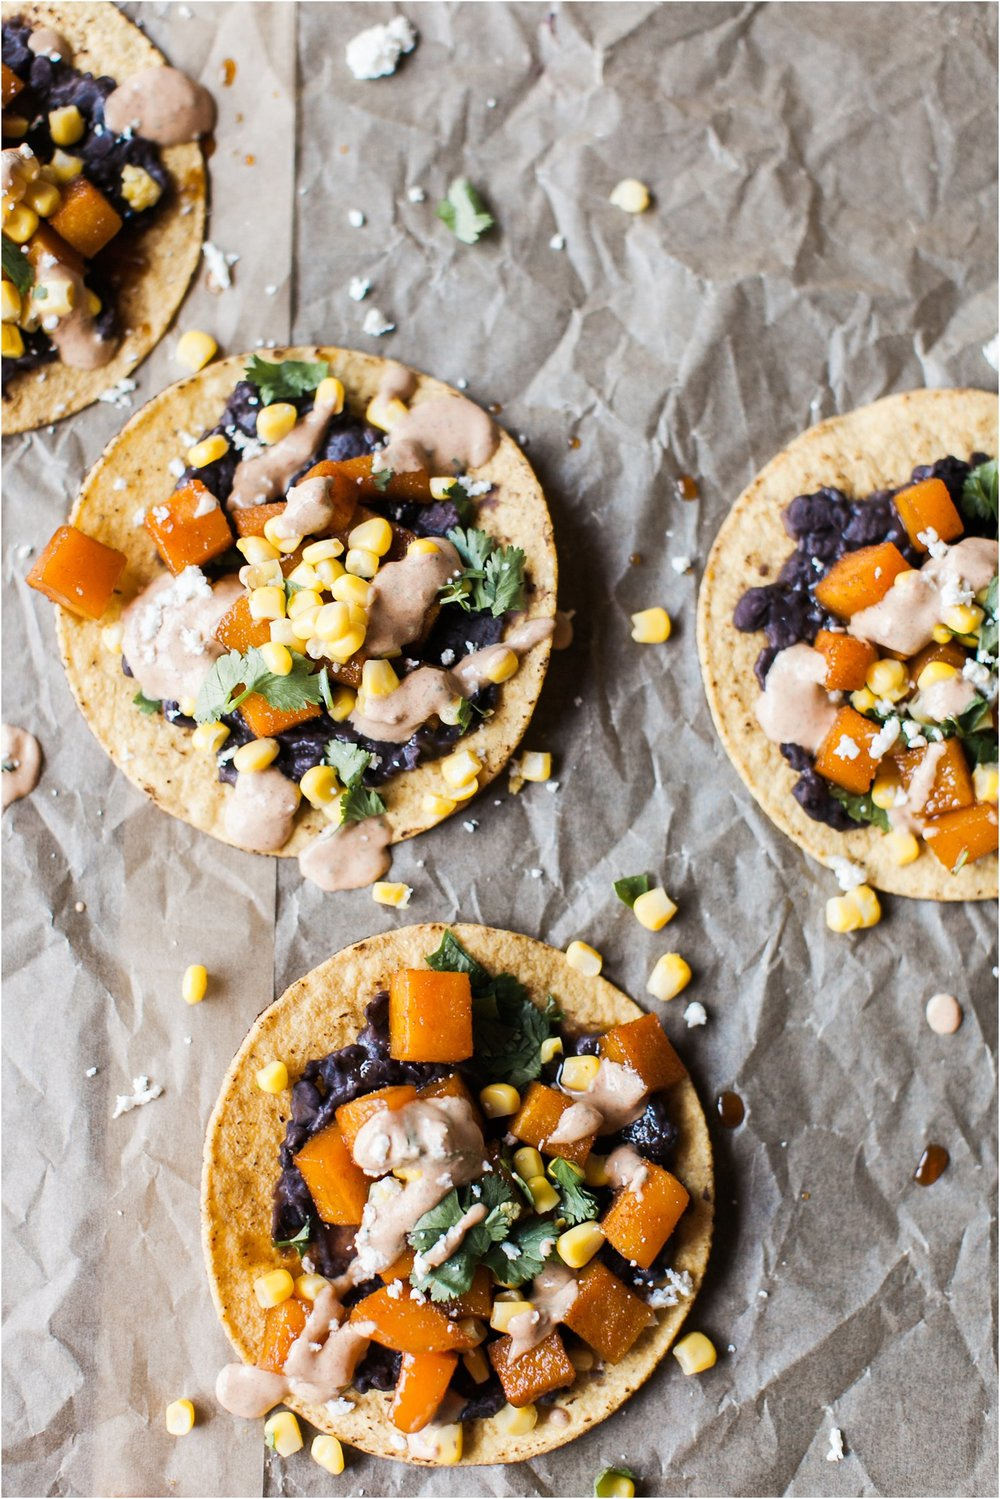 Butternut Squash & Black Bean Tostadas with Chipotle Lime Sauce | Feast & Dwell